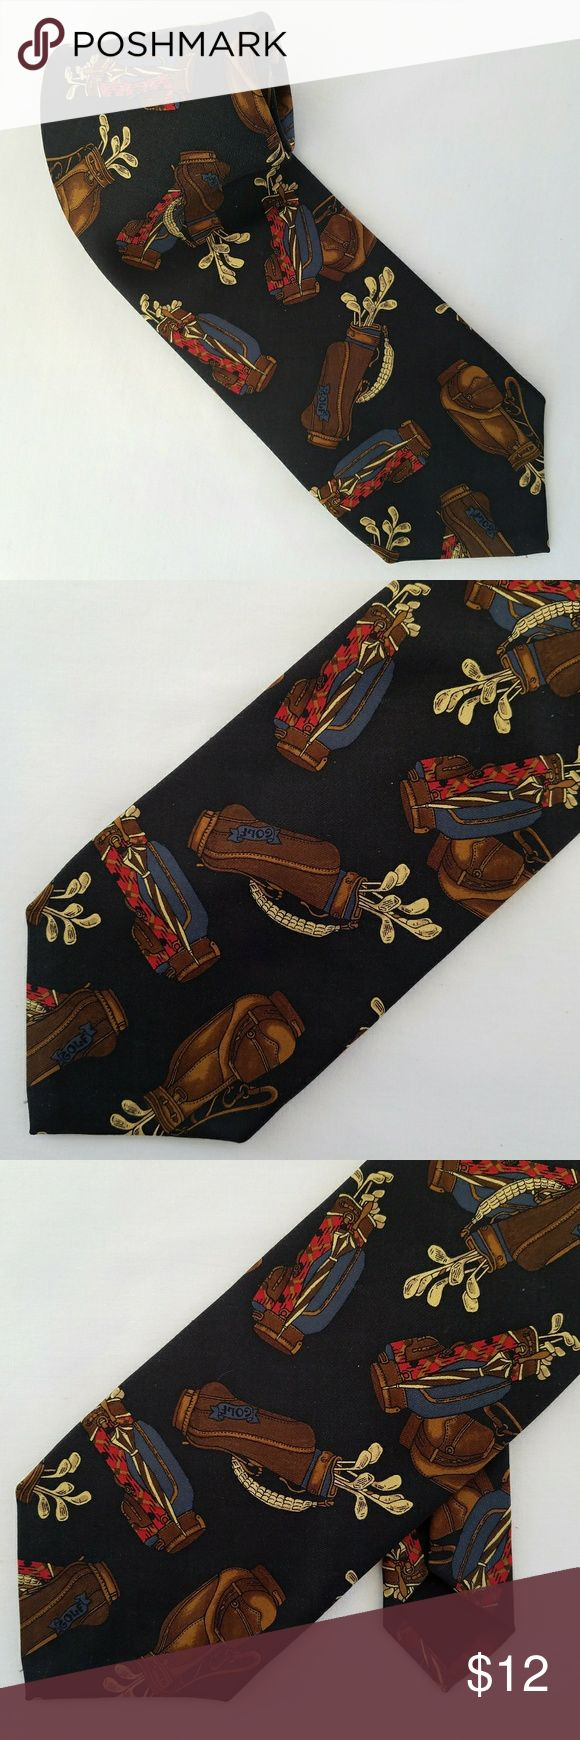 MILLS-TOUCHE Handmade Silk Golf Clubs Novelty Tie JUST IN DESCRIPTION TO COME SOON. Mills-Touche Accessories Ties